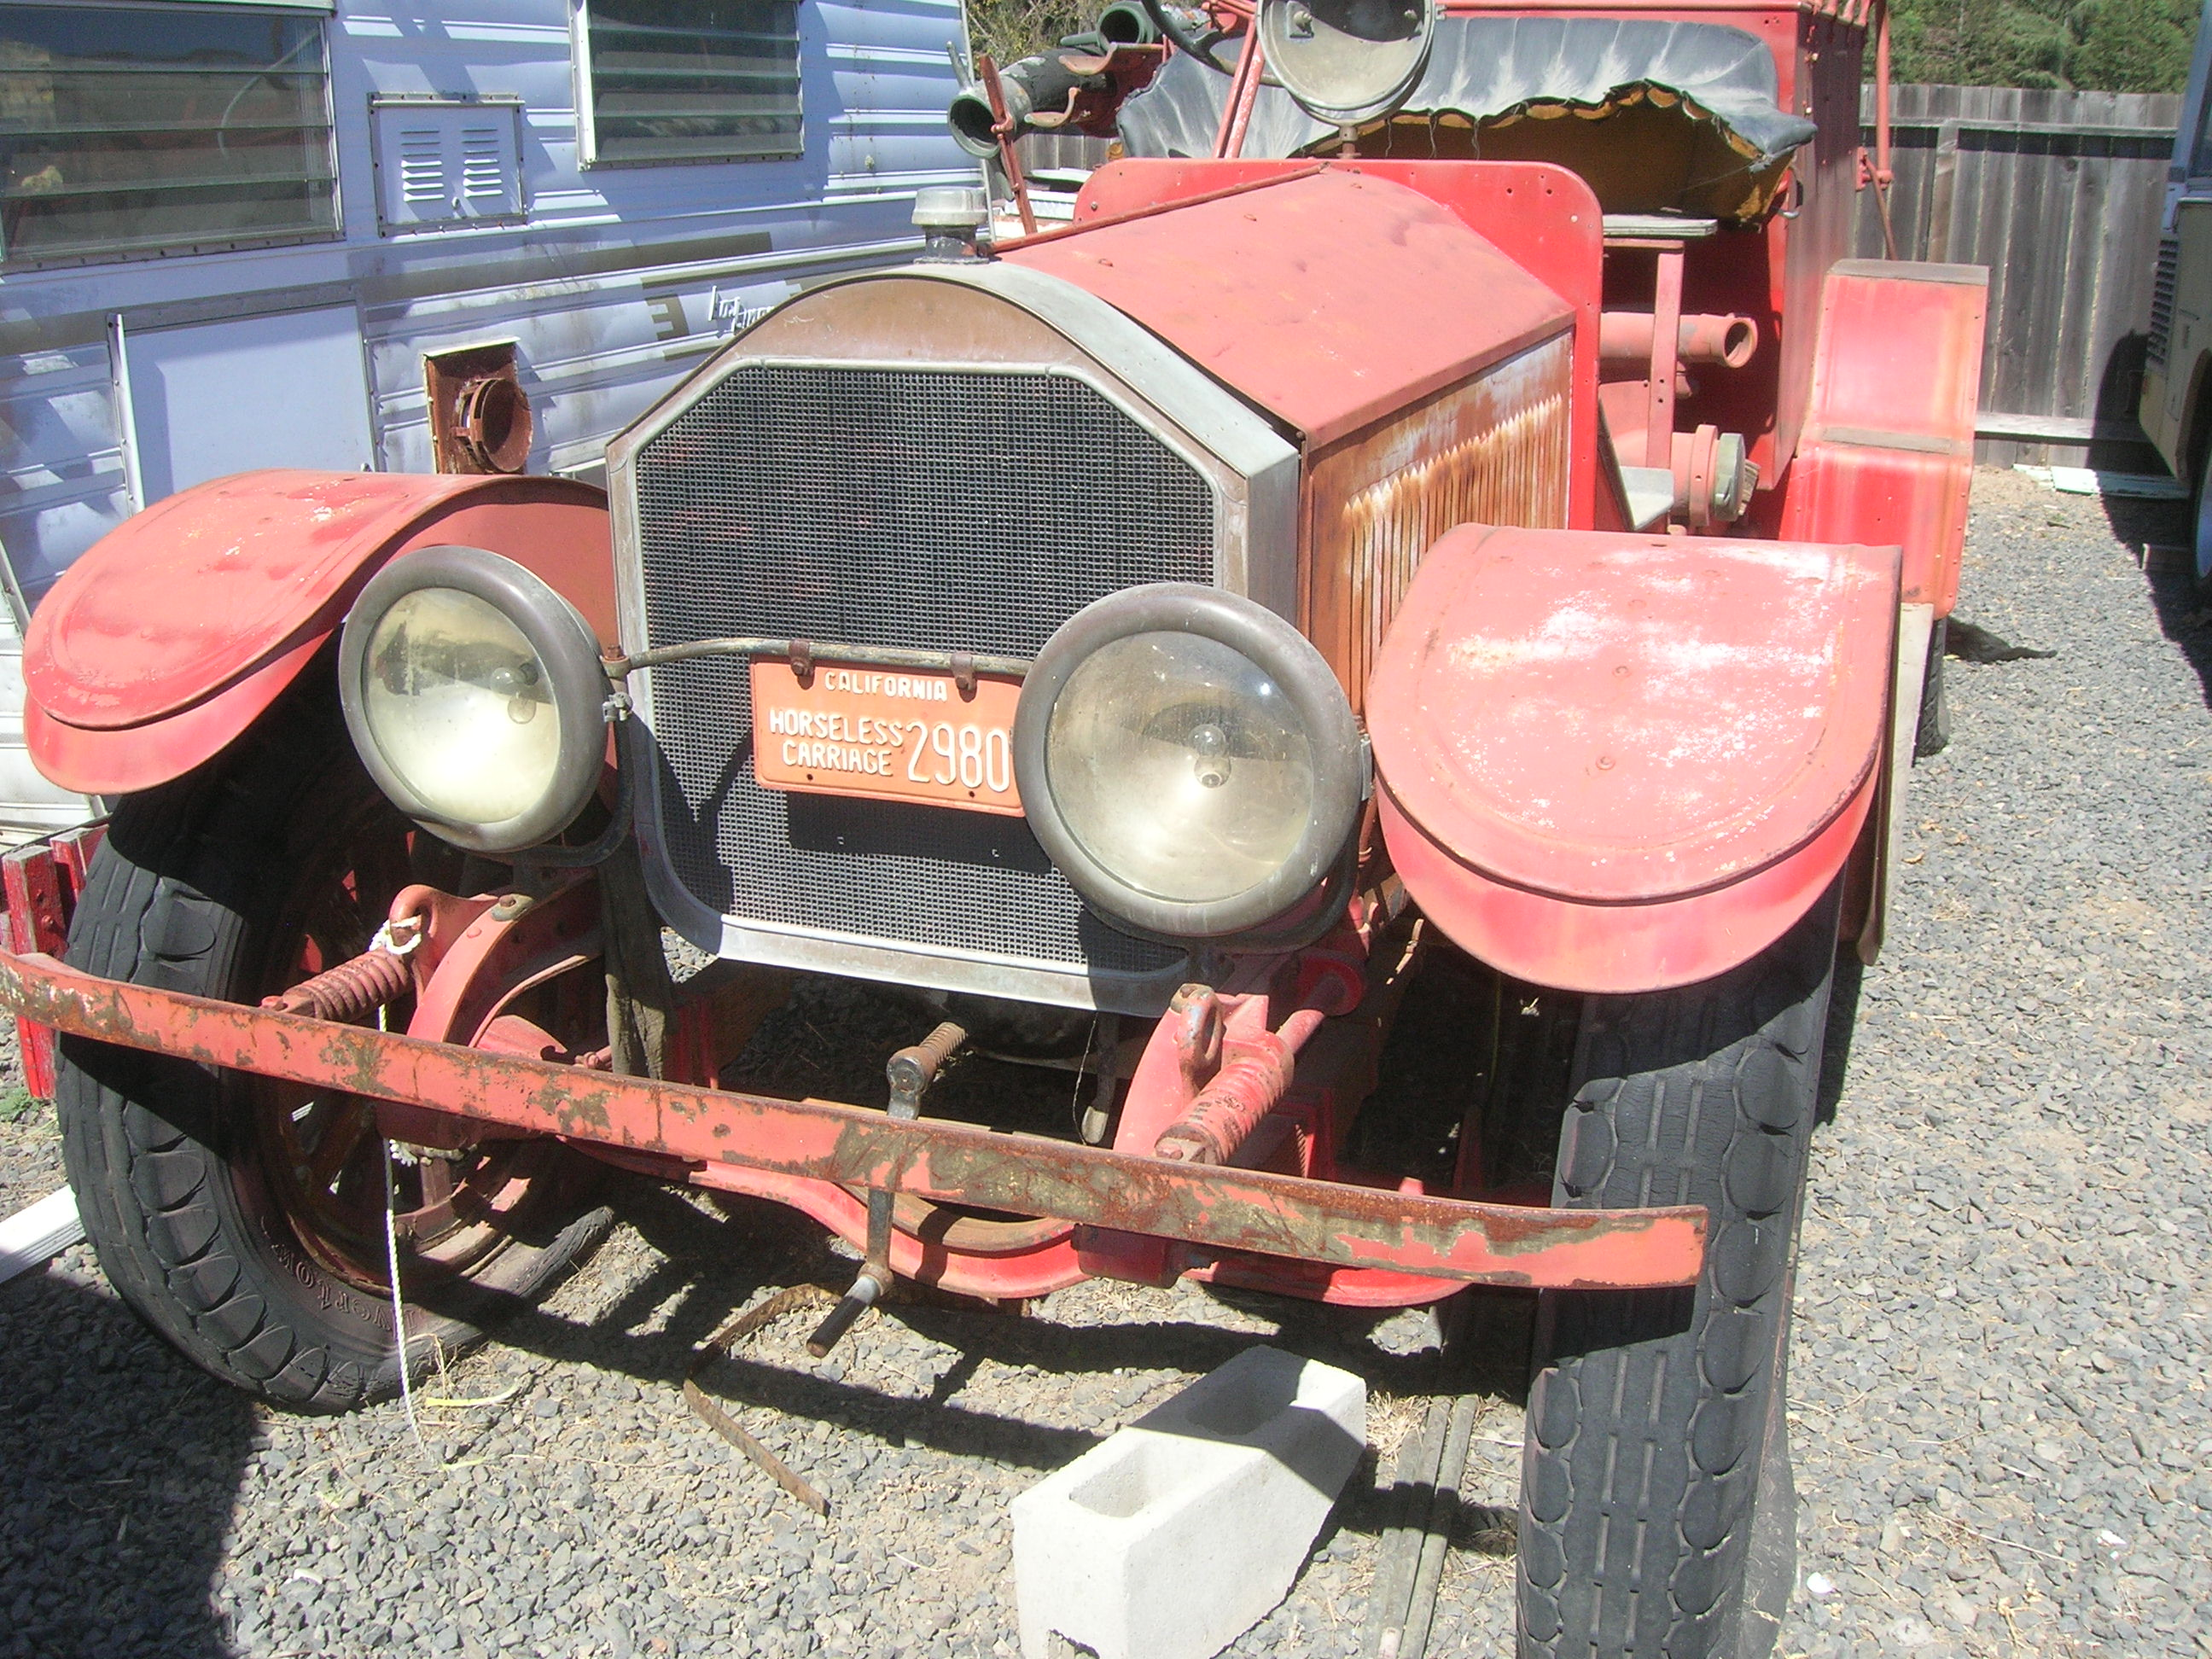 1922 American LaFrance chain drive fire truck - Cars For Sale ...